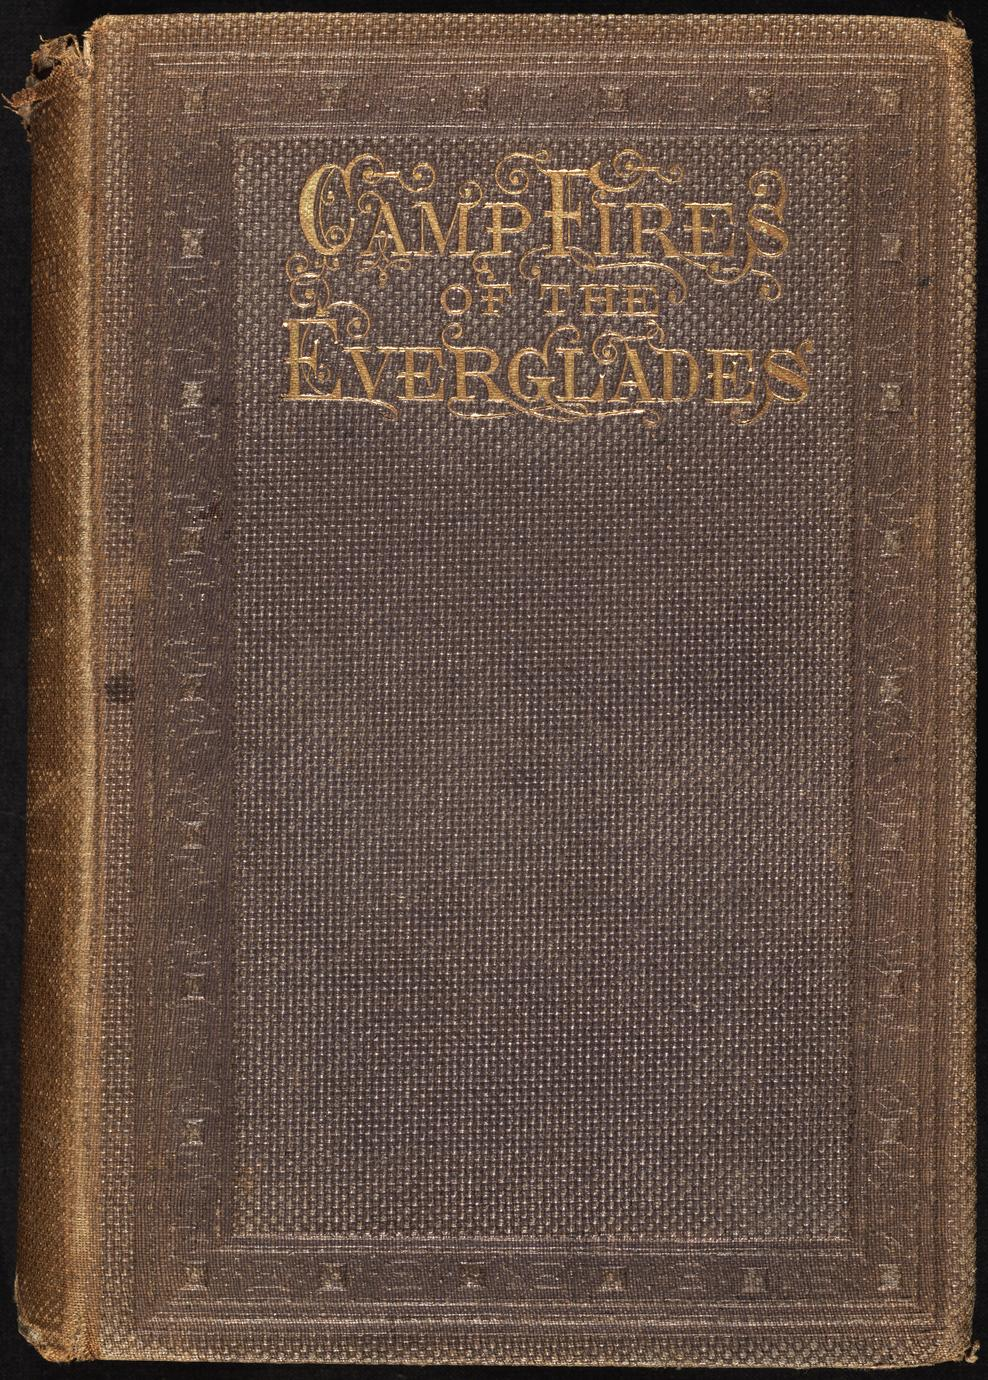 Wild sports in the South ; or, The camp-fires of the Everglades (1 of 2)